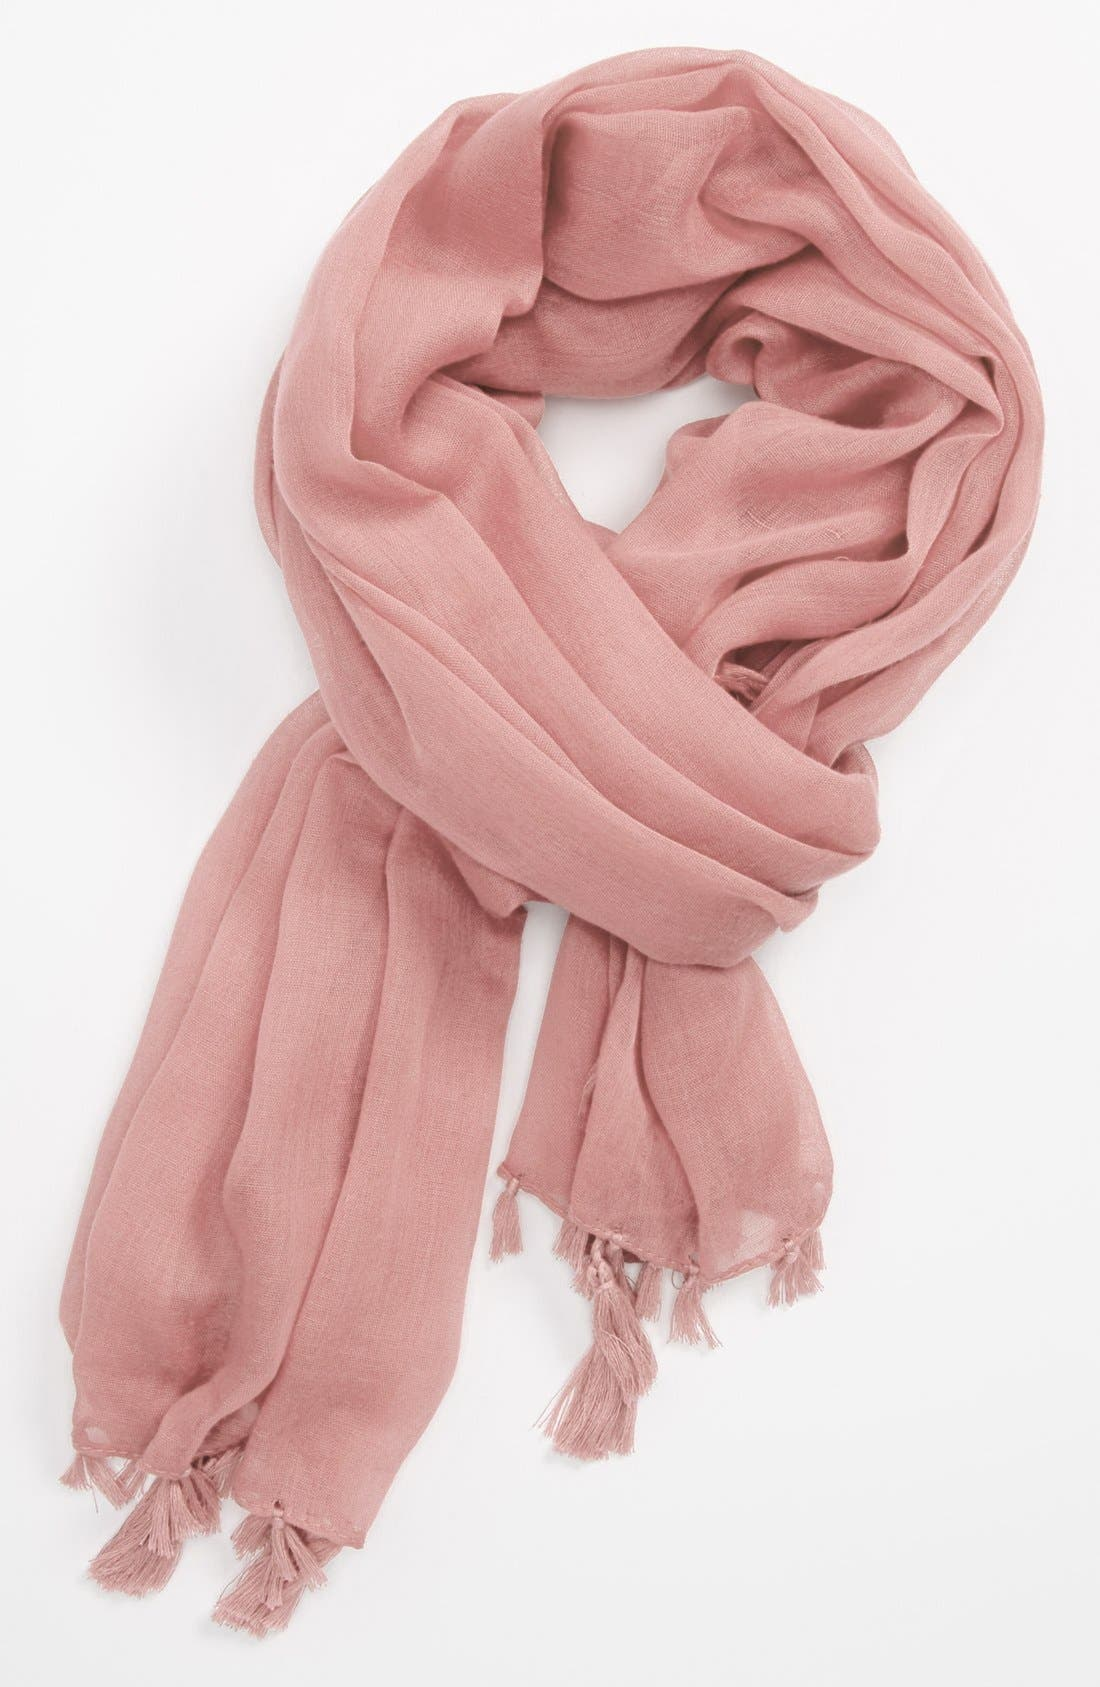 Alternate Image 1 Selected - Lulu Sheer Fringed Scarf (Online Only)